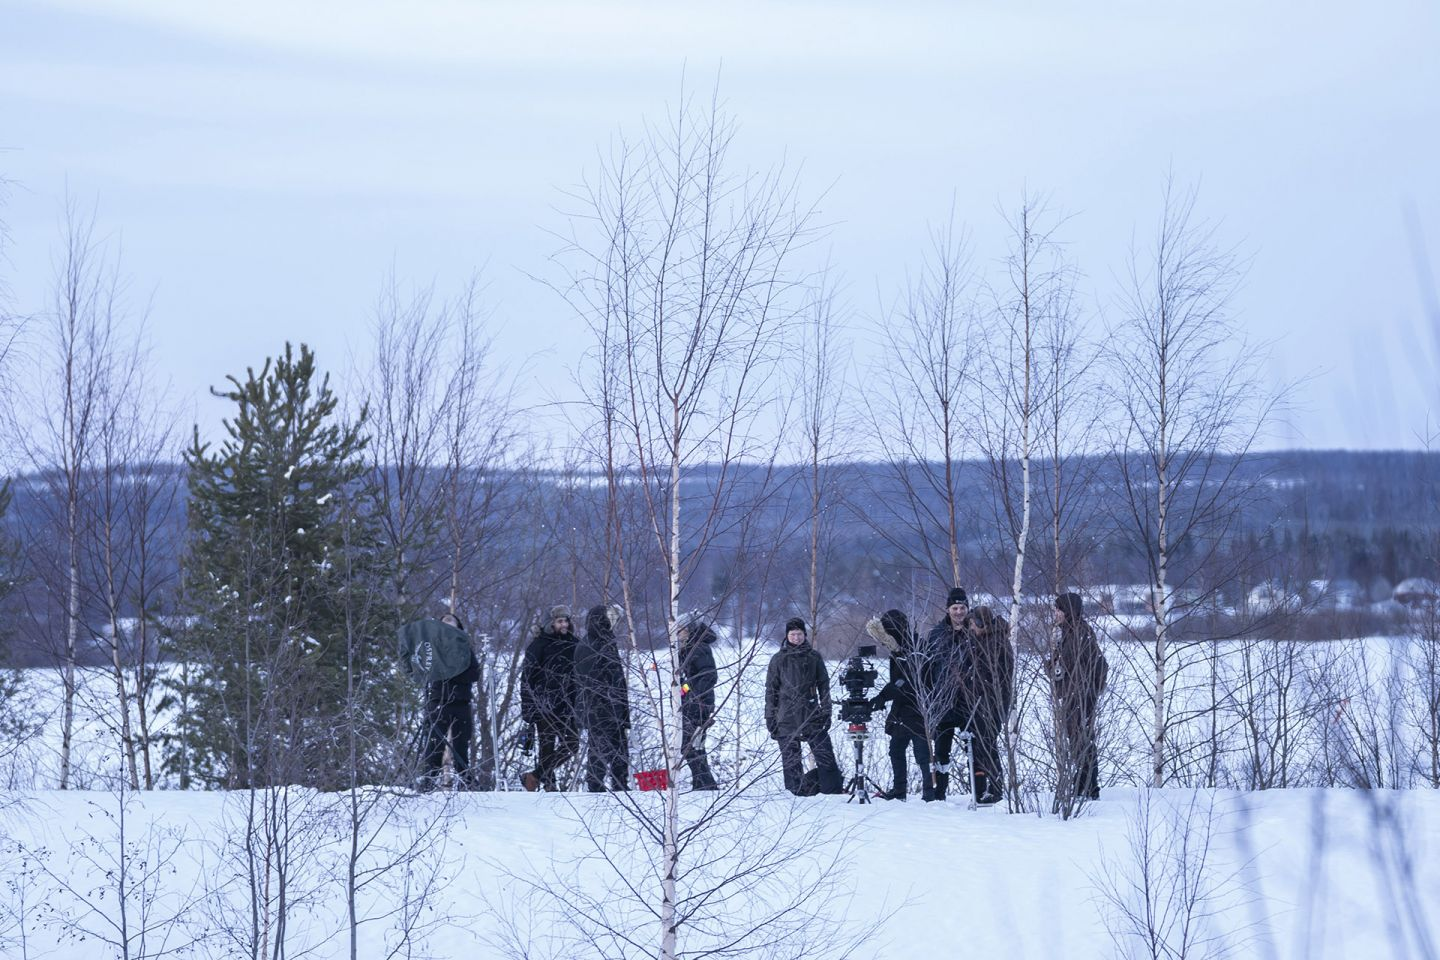 On the set of I Remember in Finnish Lapland